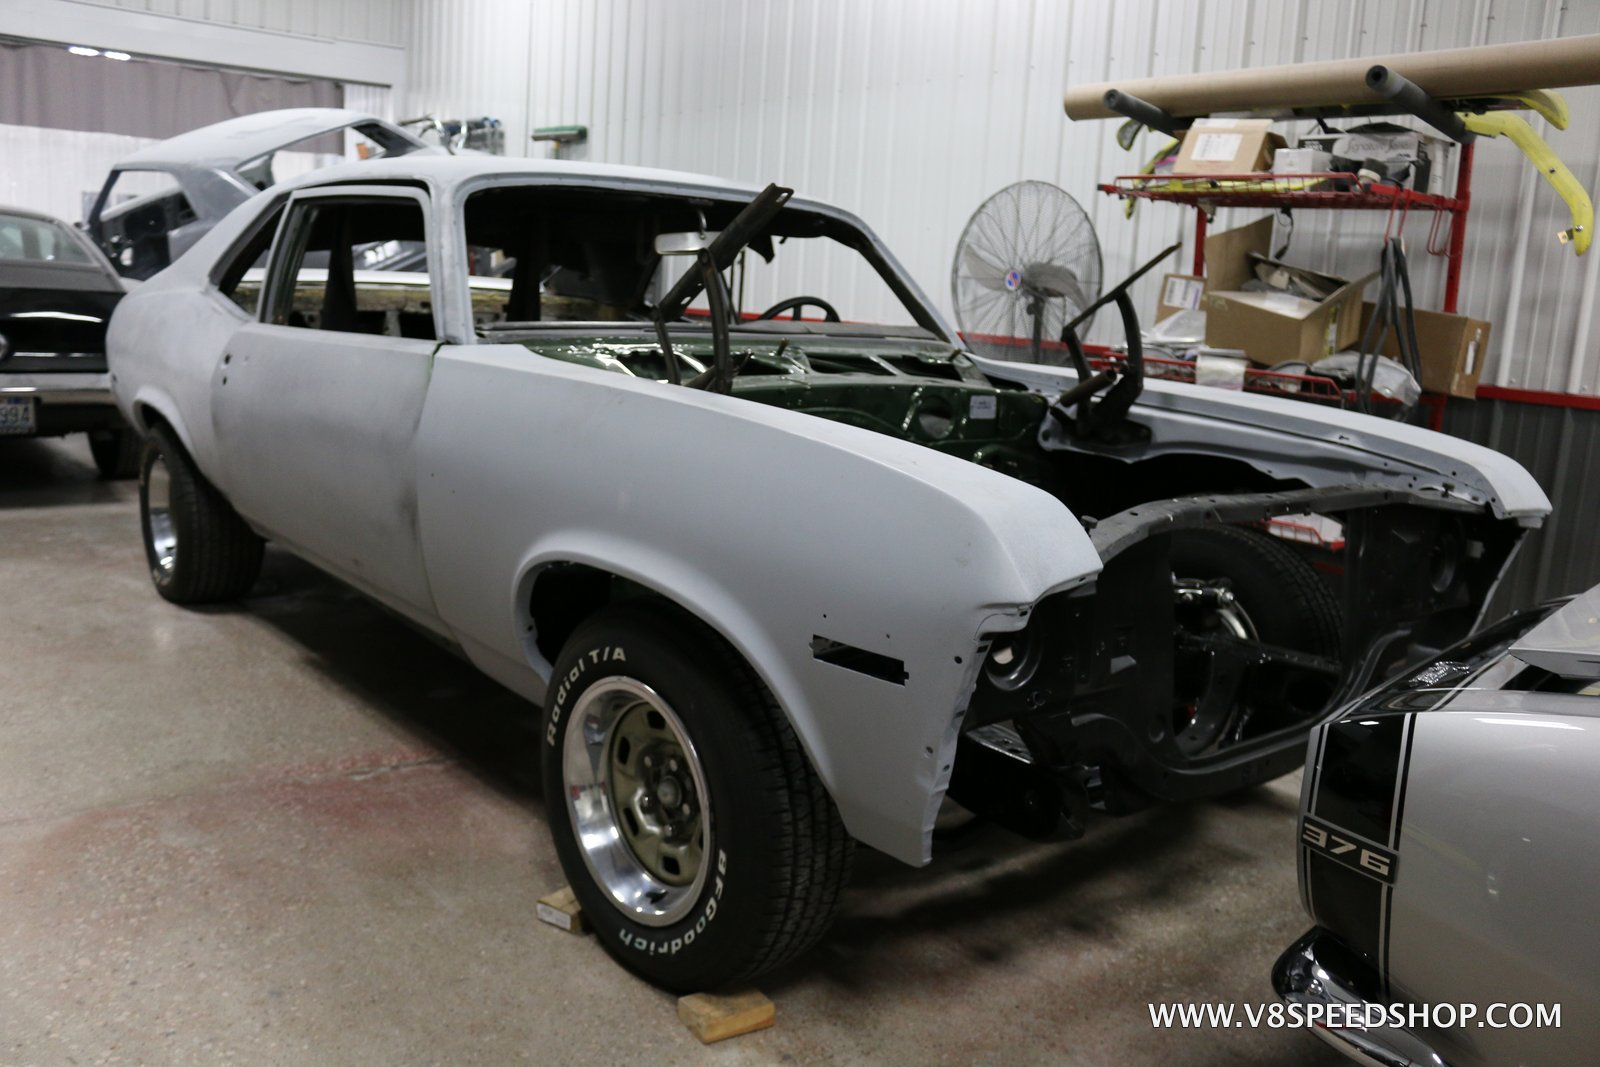 1972 Chevrolet Nova Completion at V8 Speed & Resto Shop